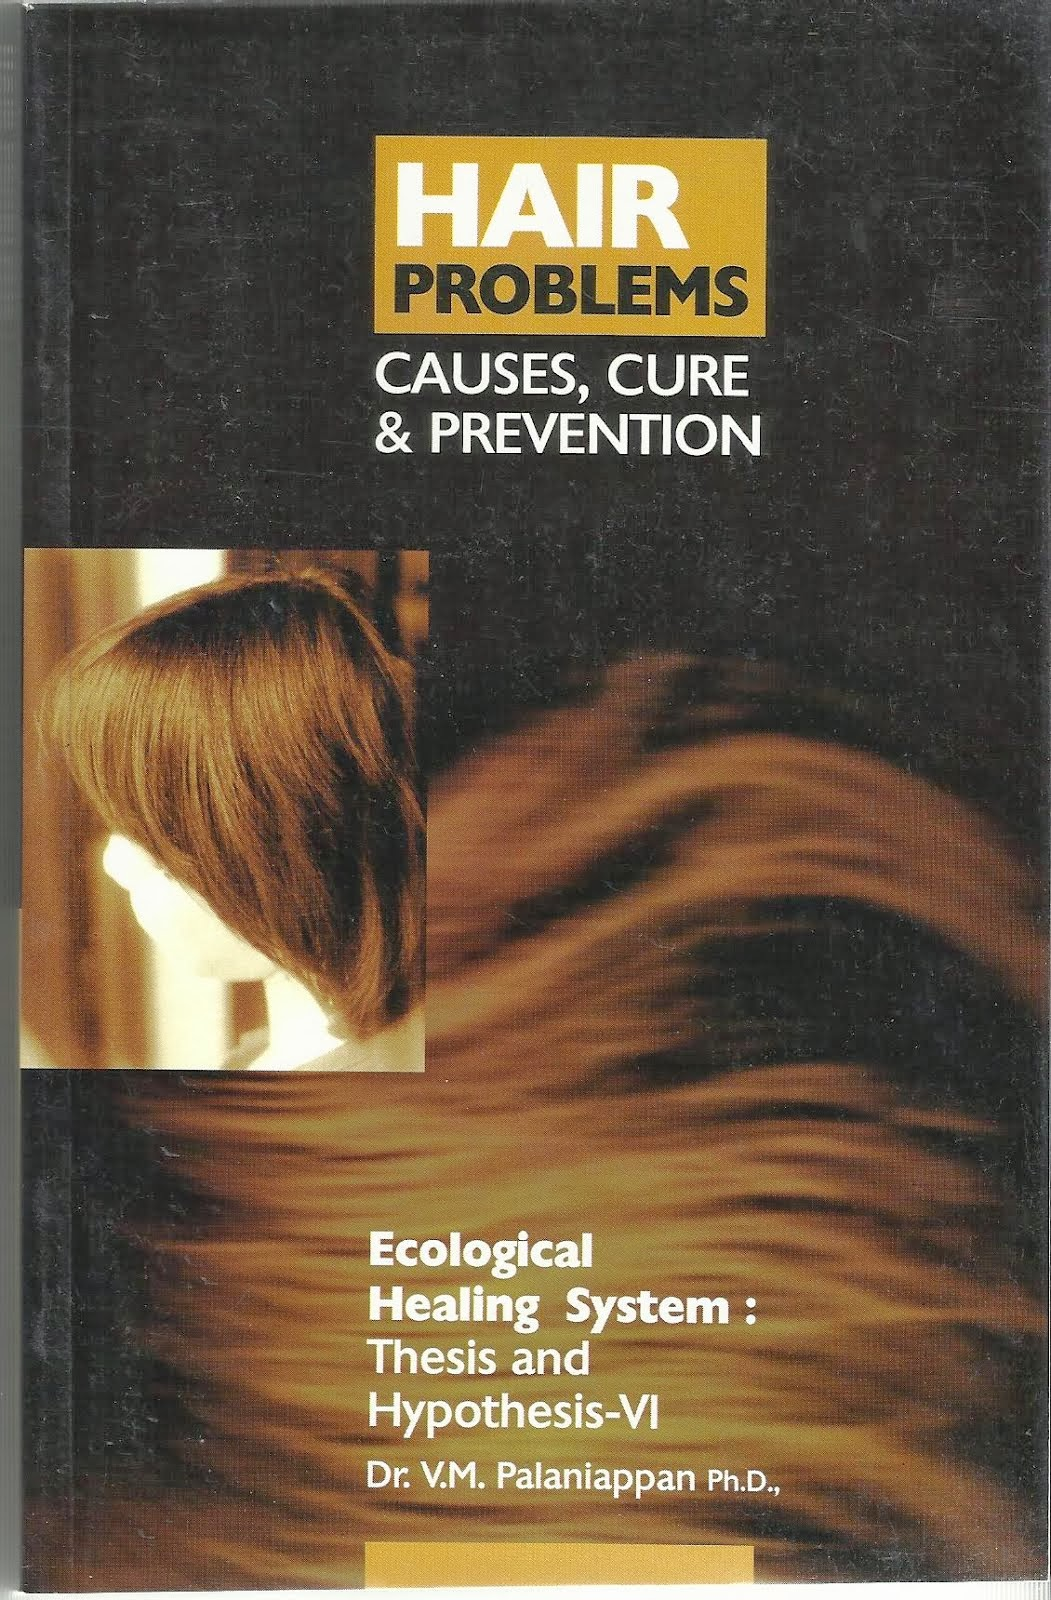 HAIR PROBLEMS: CAUSES, CURE & PREVENTION